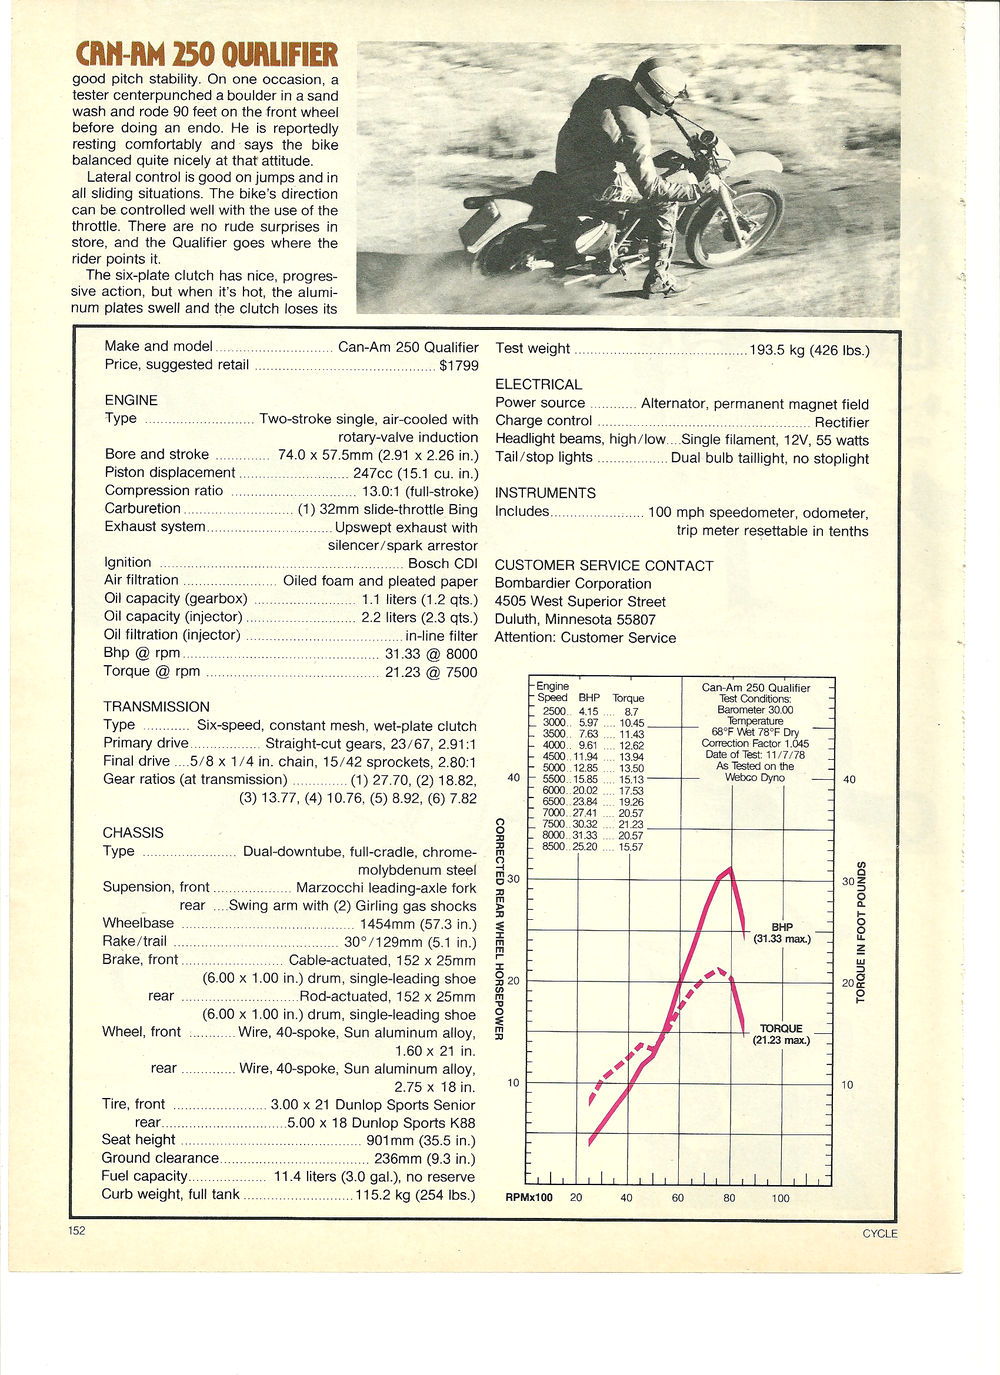 1979_CanAm_250_test_pg7.png